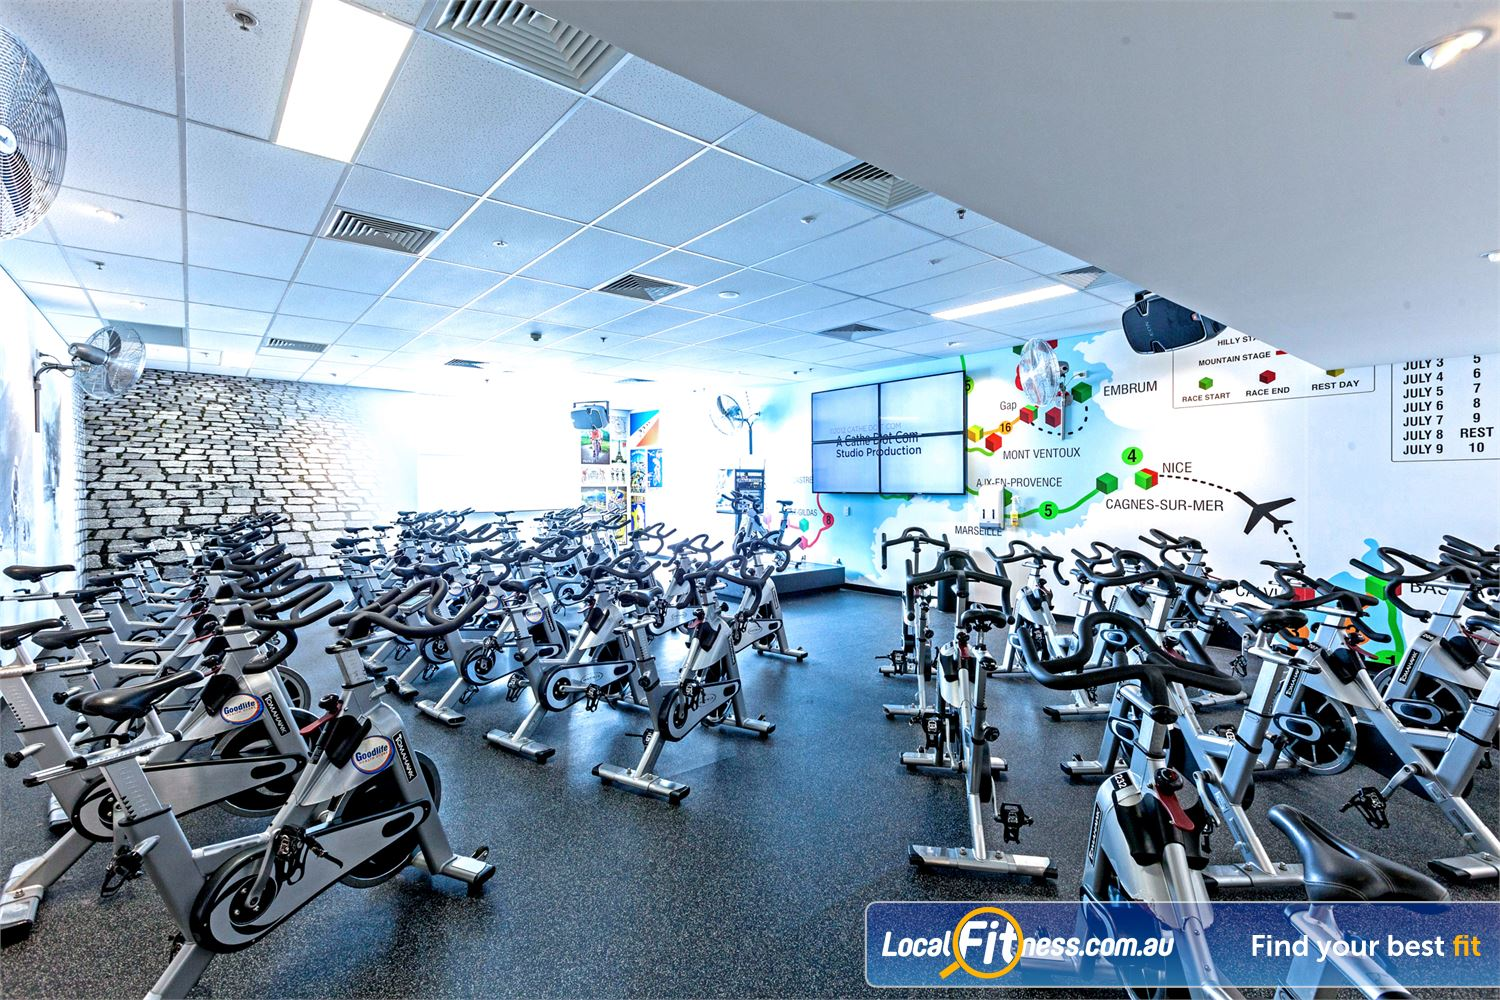 Goodlife Health Clubs Fortitude Valley Dedicated Fortitude Valley spin cycle studio.